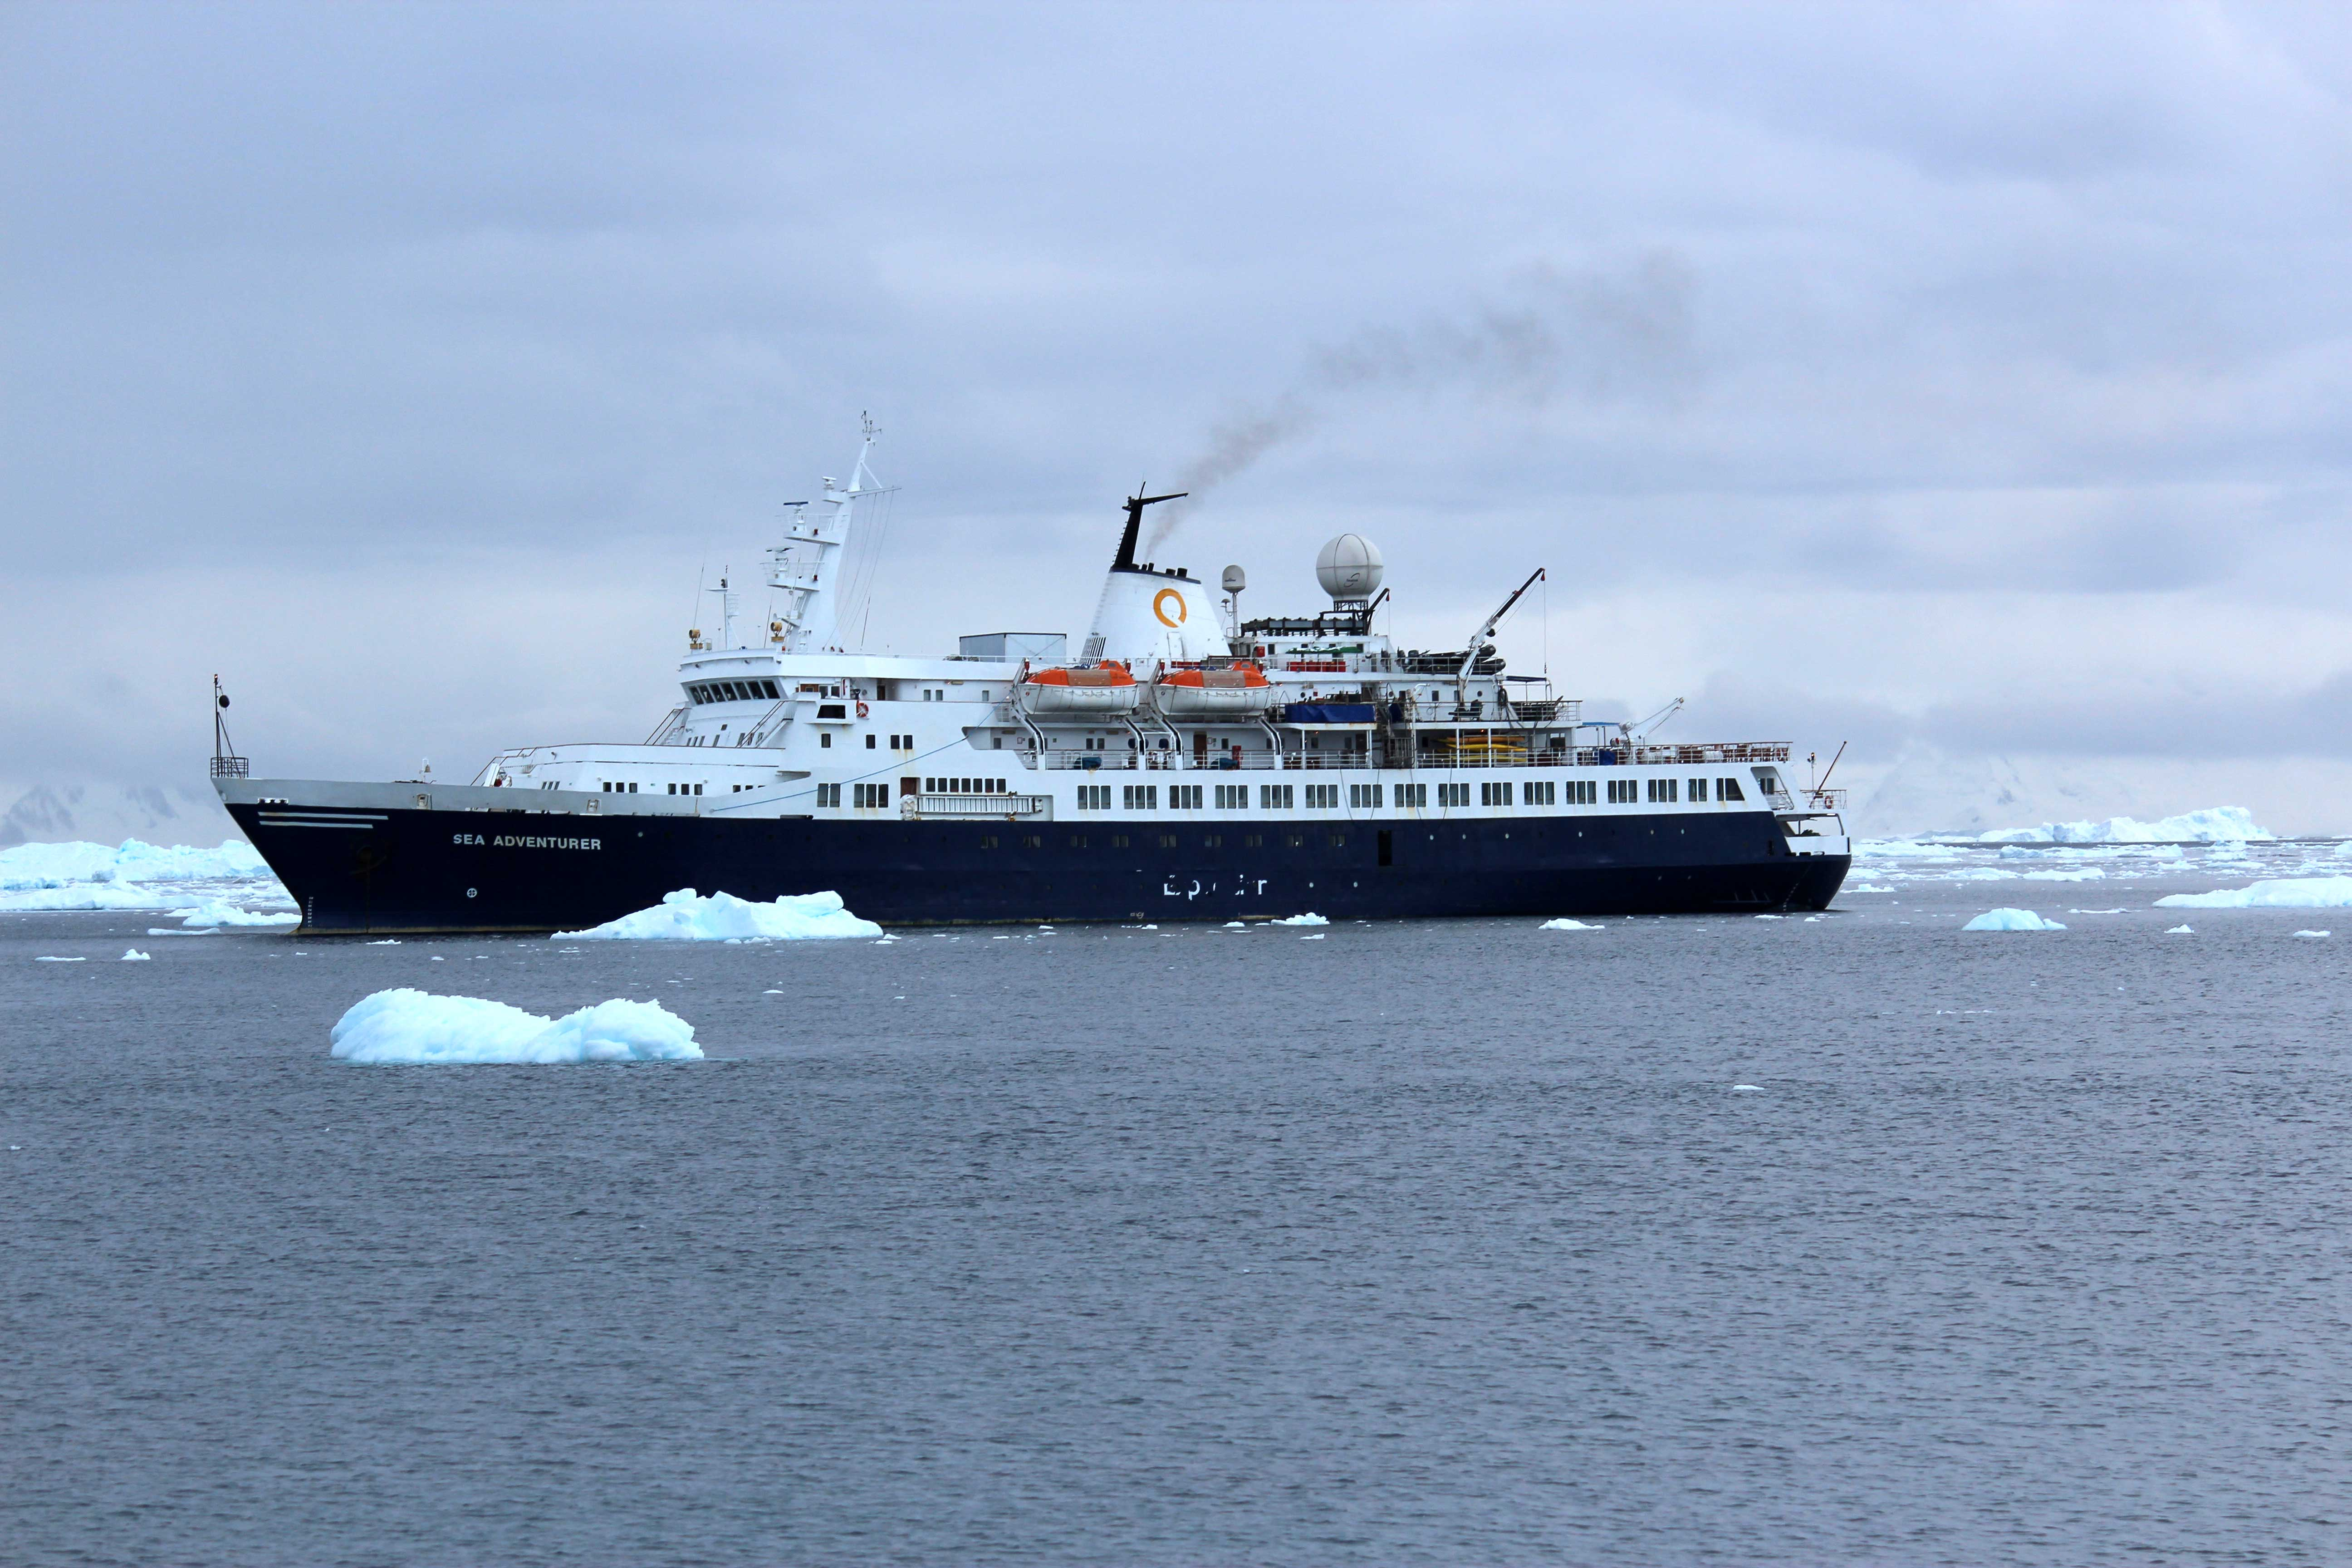 Ocean Adventurer (Sea Adventurer), the ship servicing Wild & Ancient Britain with Ireland